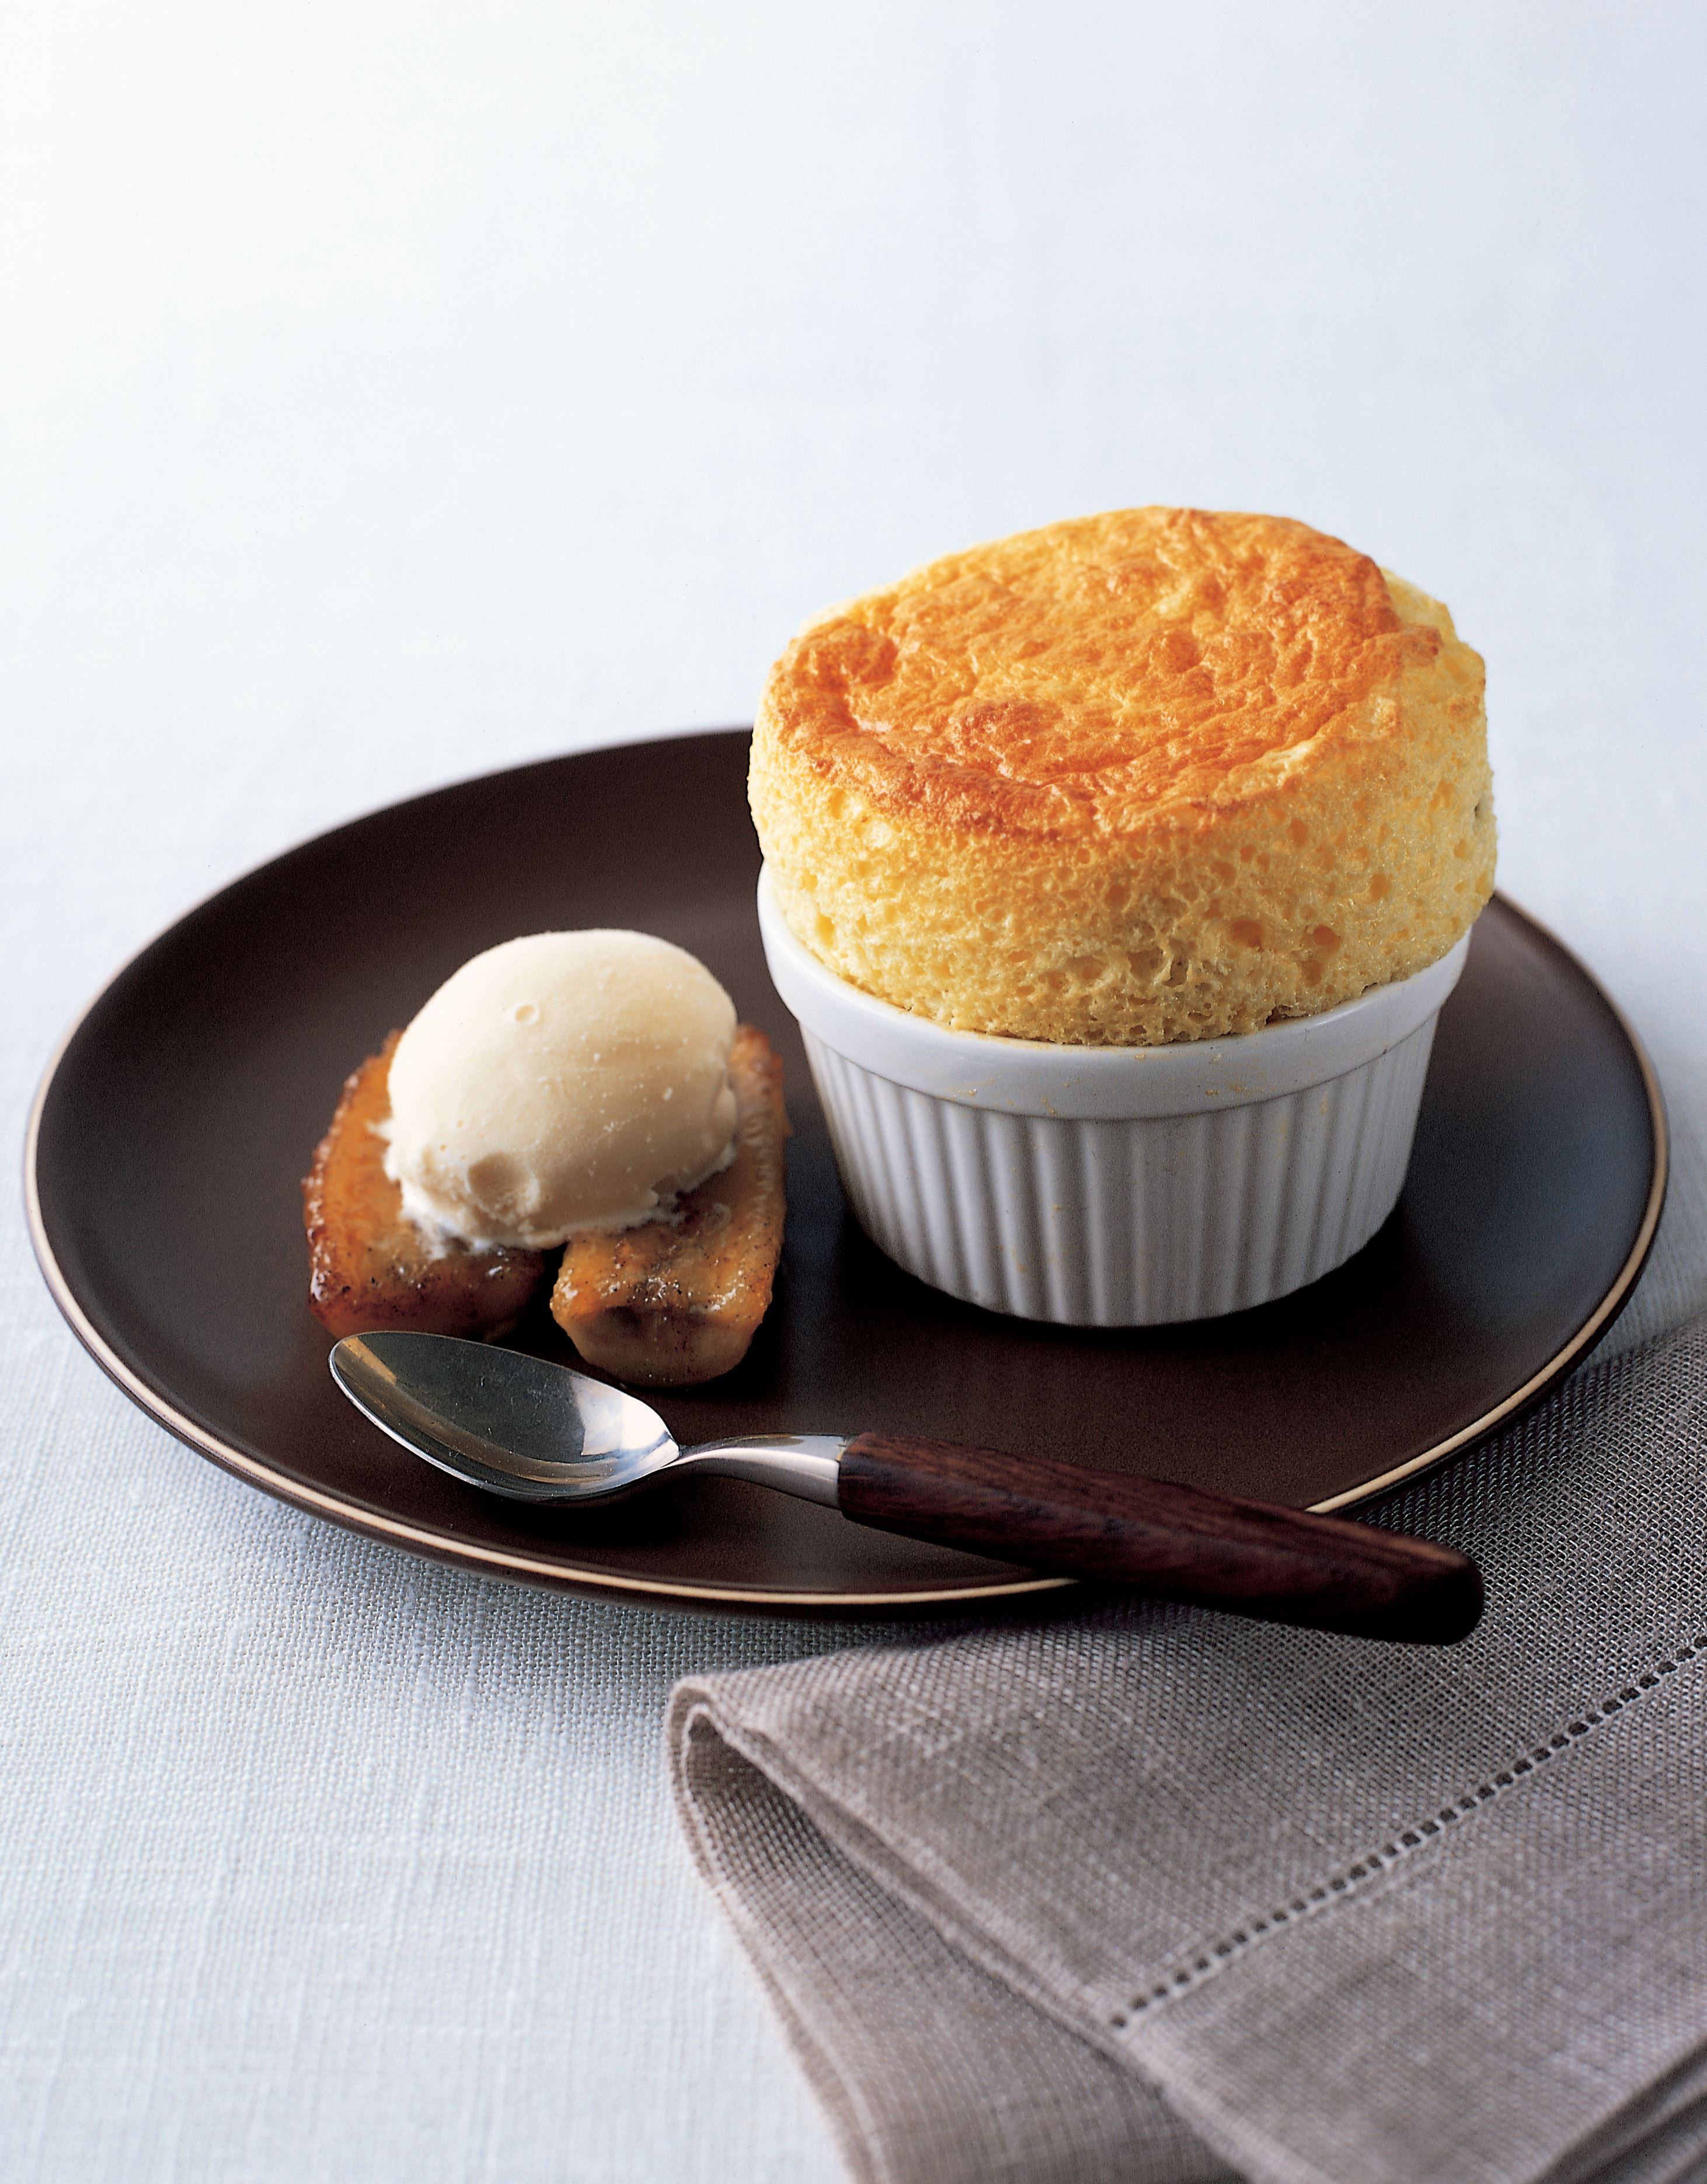 Passion fruit and custard soufflé